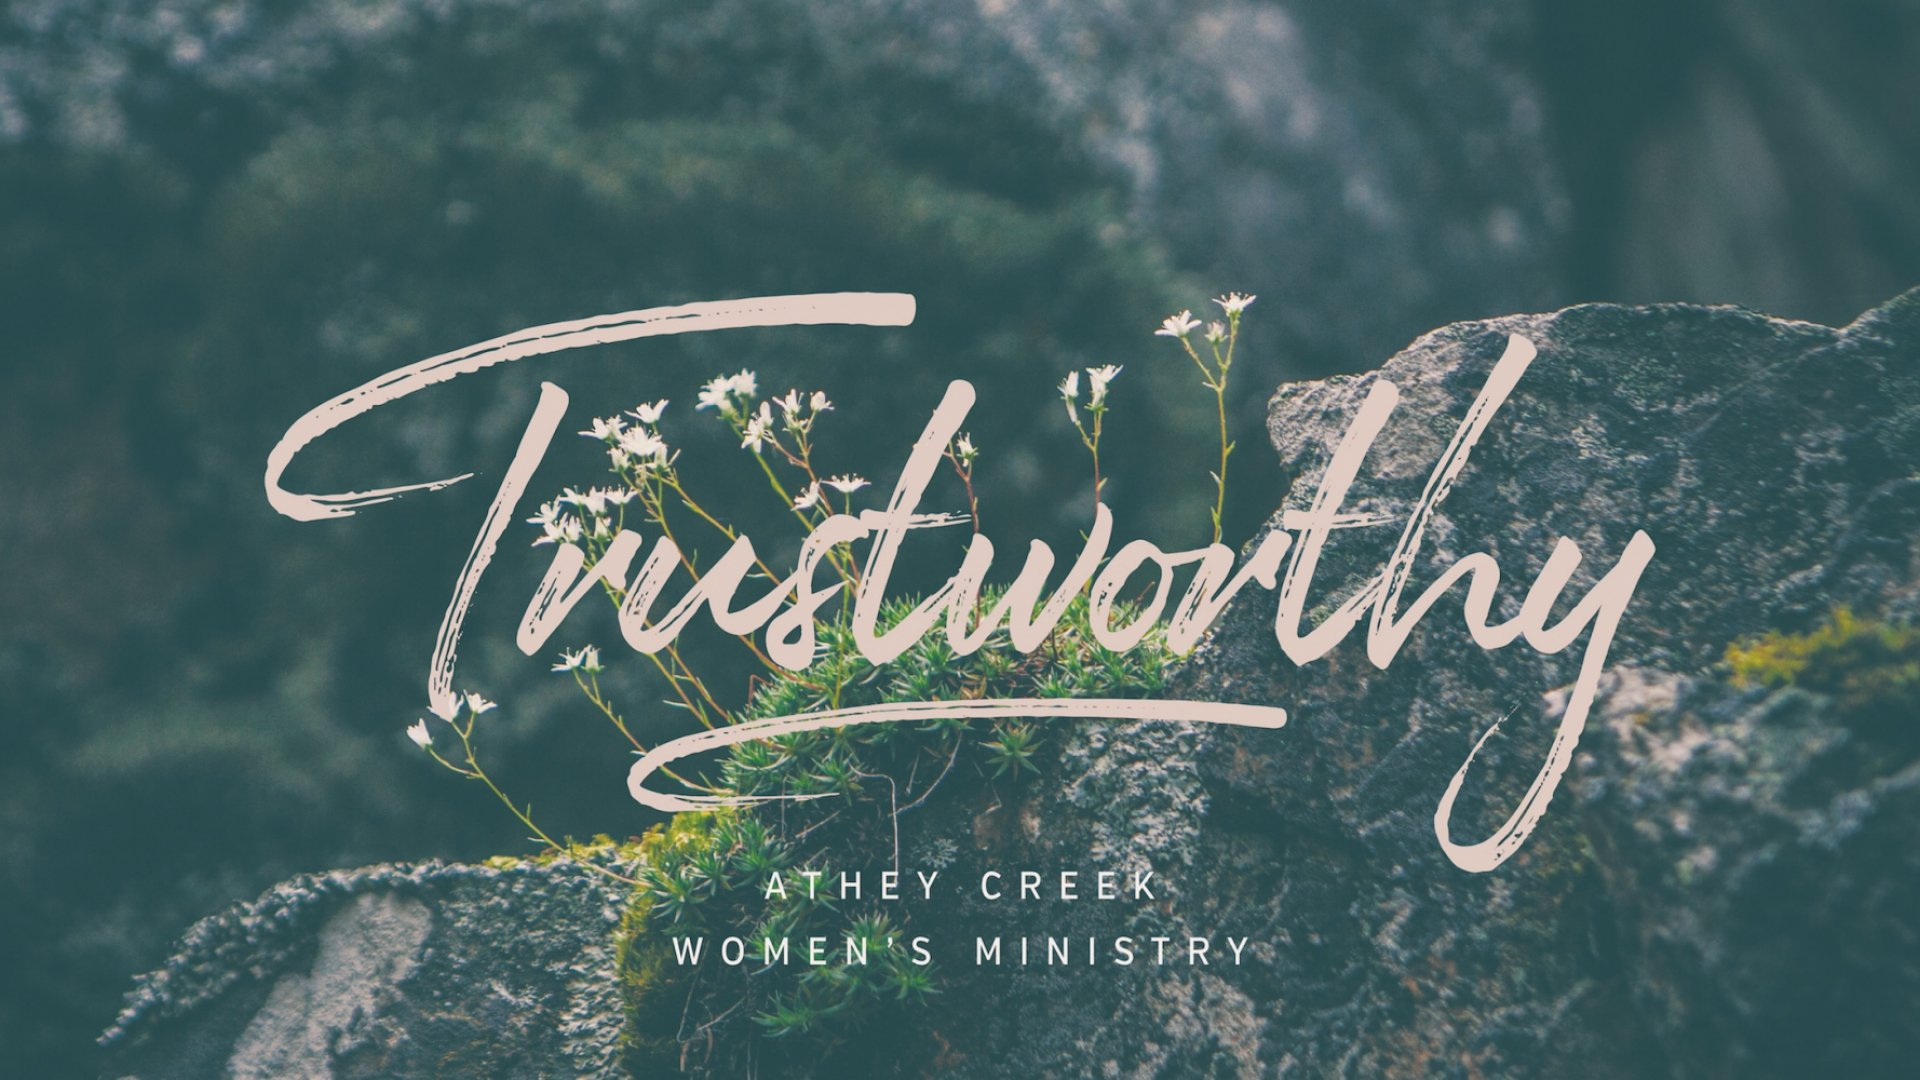 Teaching artwork for Trustworthy